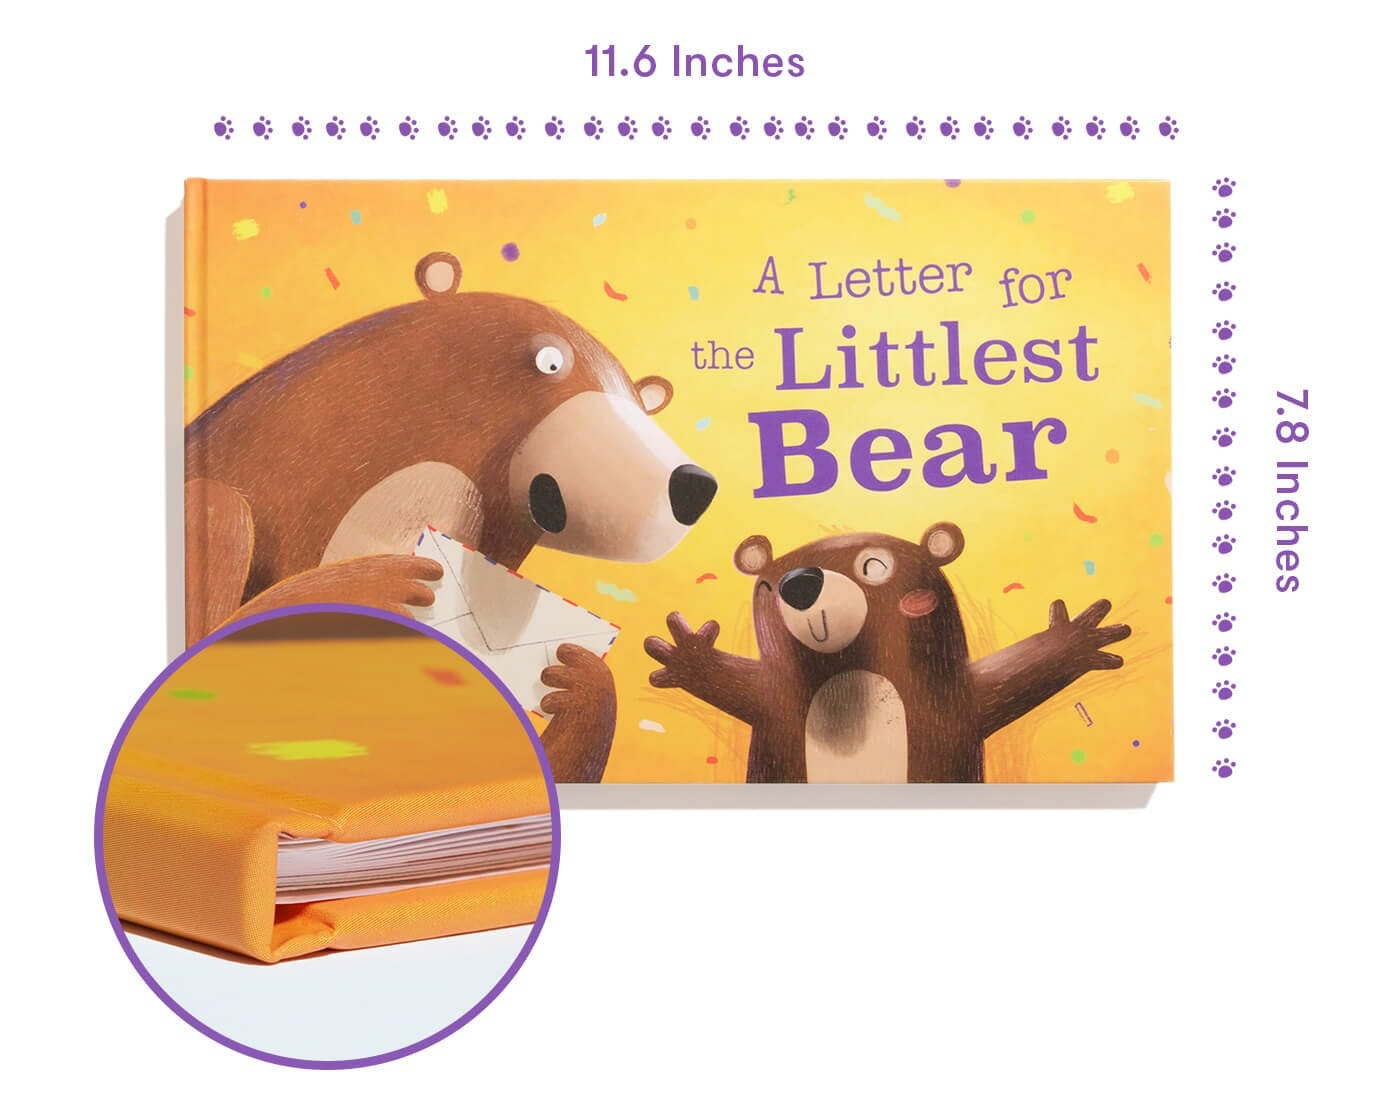 The Littlest Bear - Product Description of the book specification